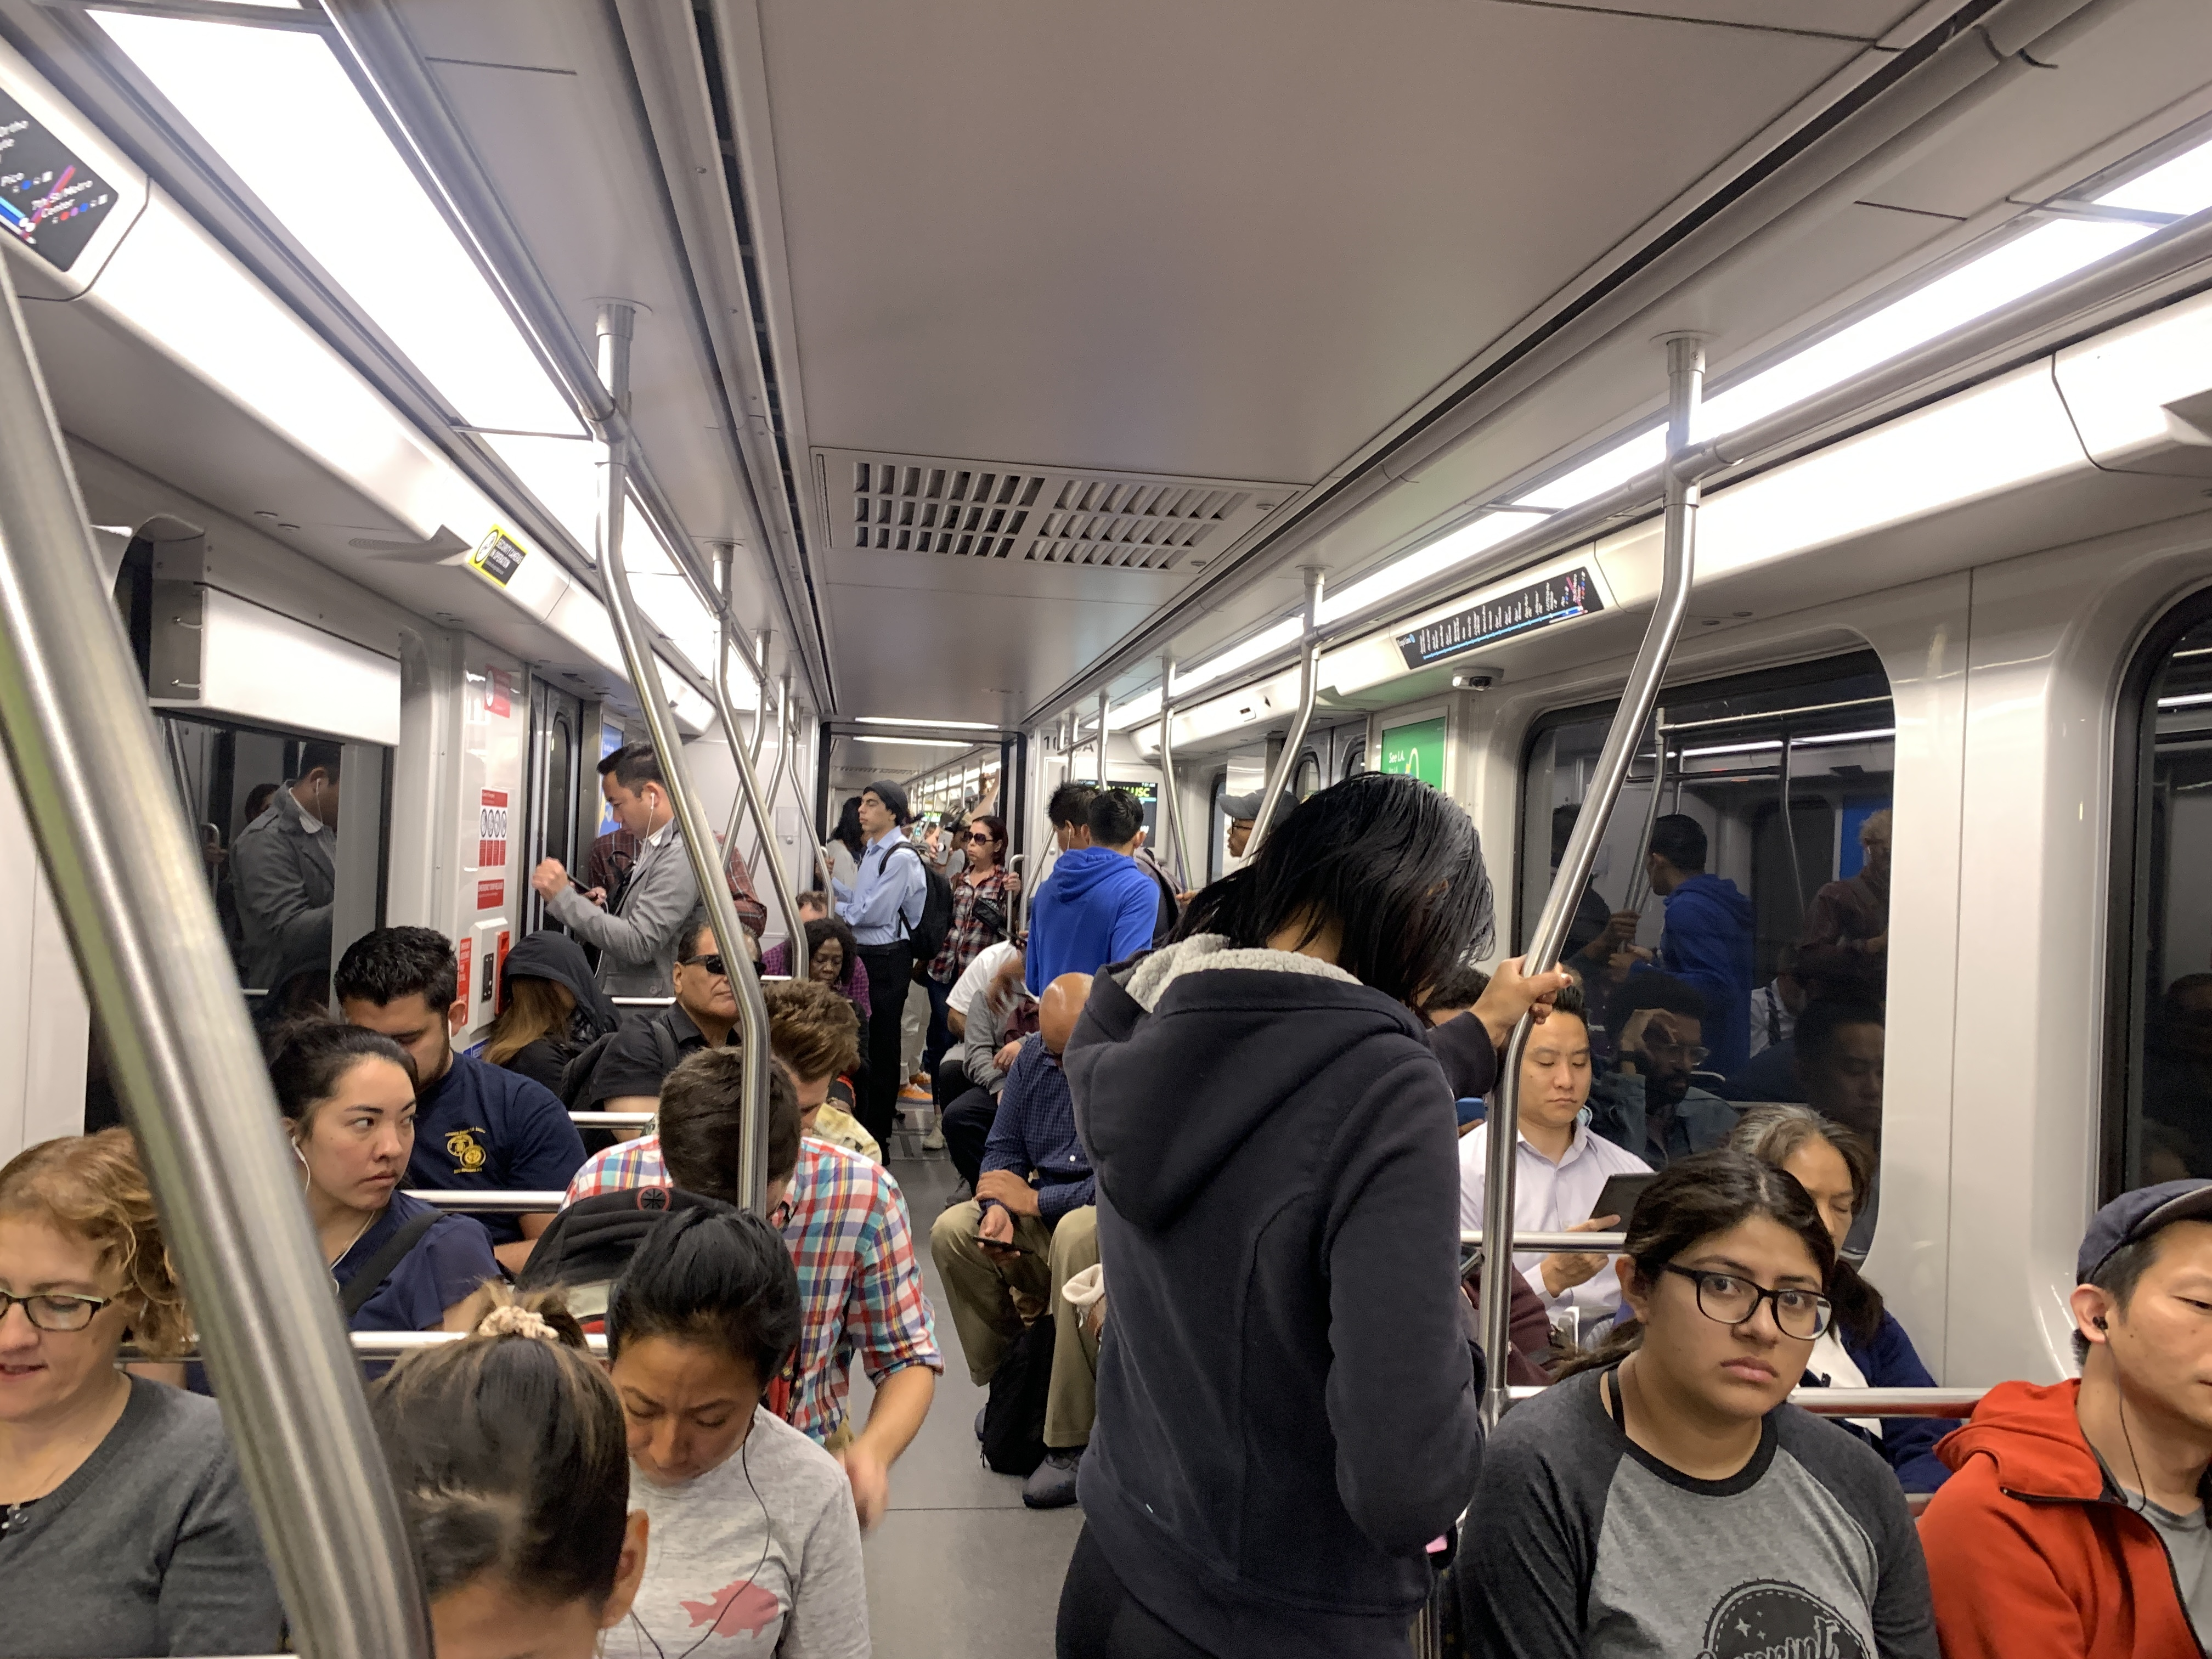 A mix of men and women of different ages and ethnicities sit and stand inside a train.